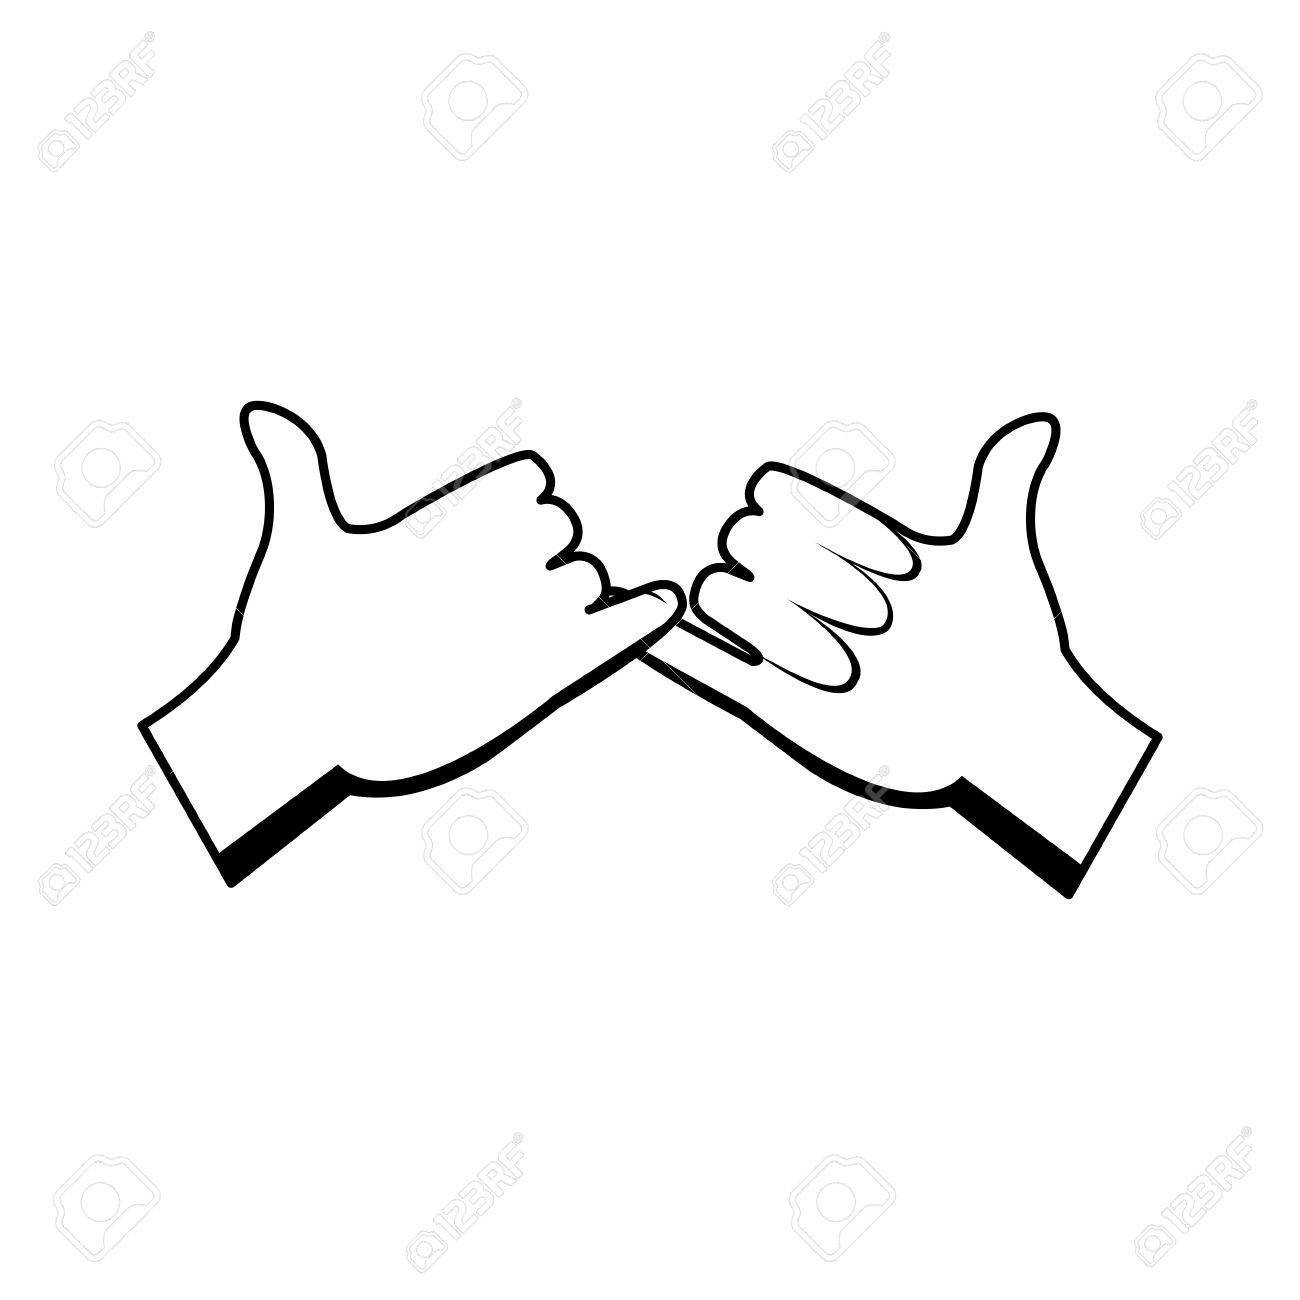 Cartoon hands pinky promise gesture image » Clipart Portal.